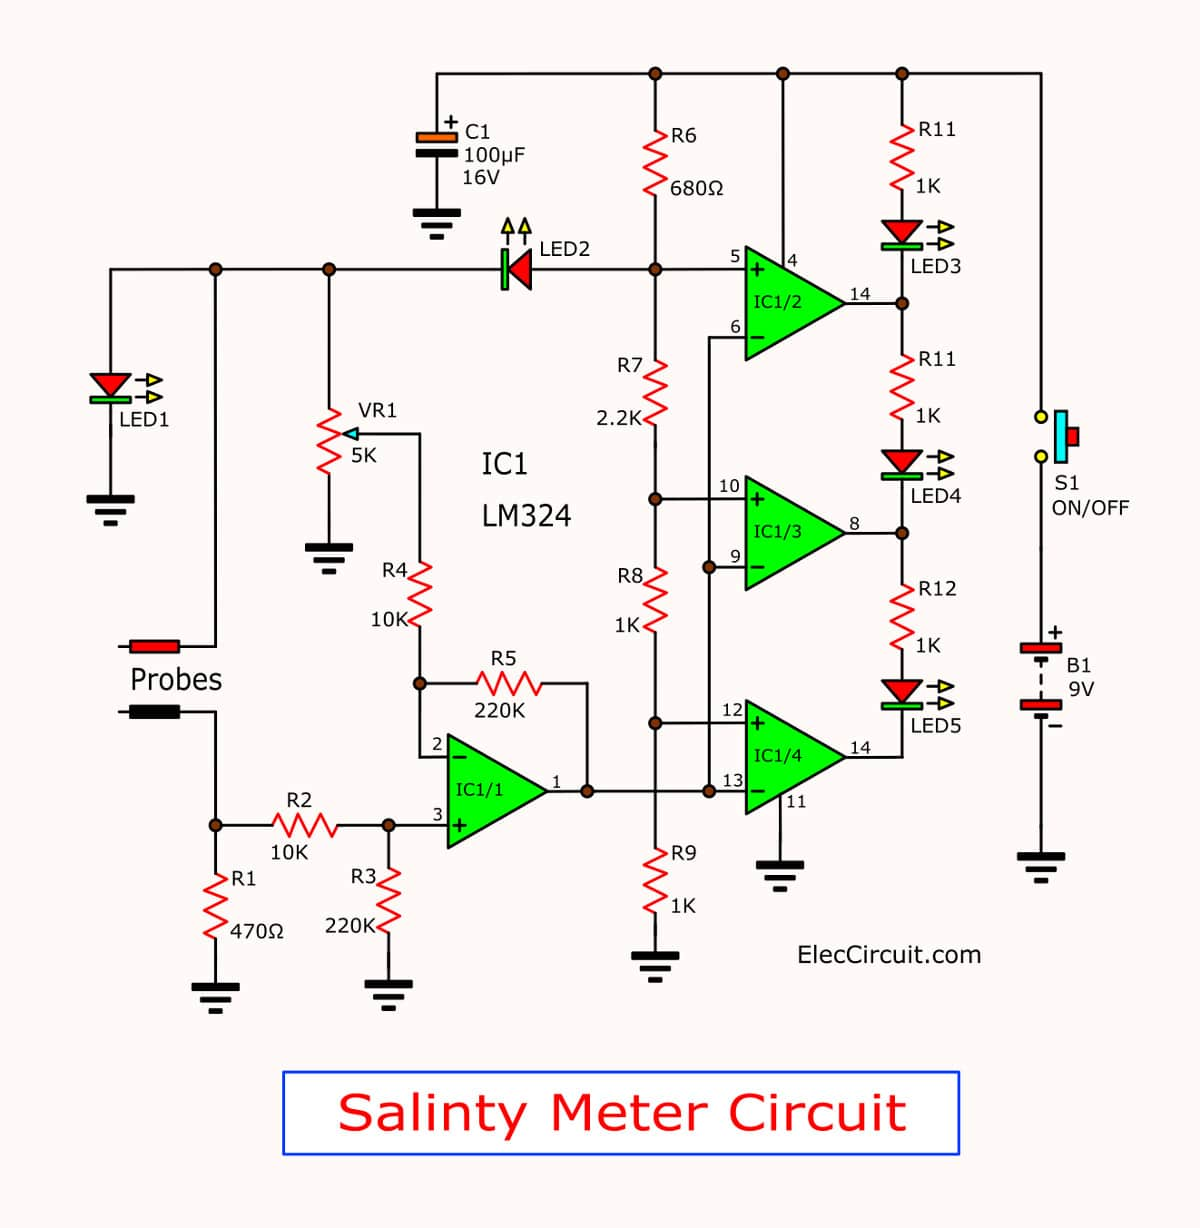 Circuit Diagram Tester Wiring Library Lm324 Pin The Food Salt Salinity Meter